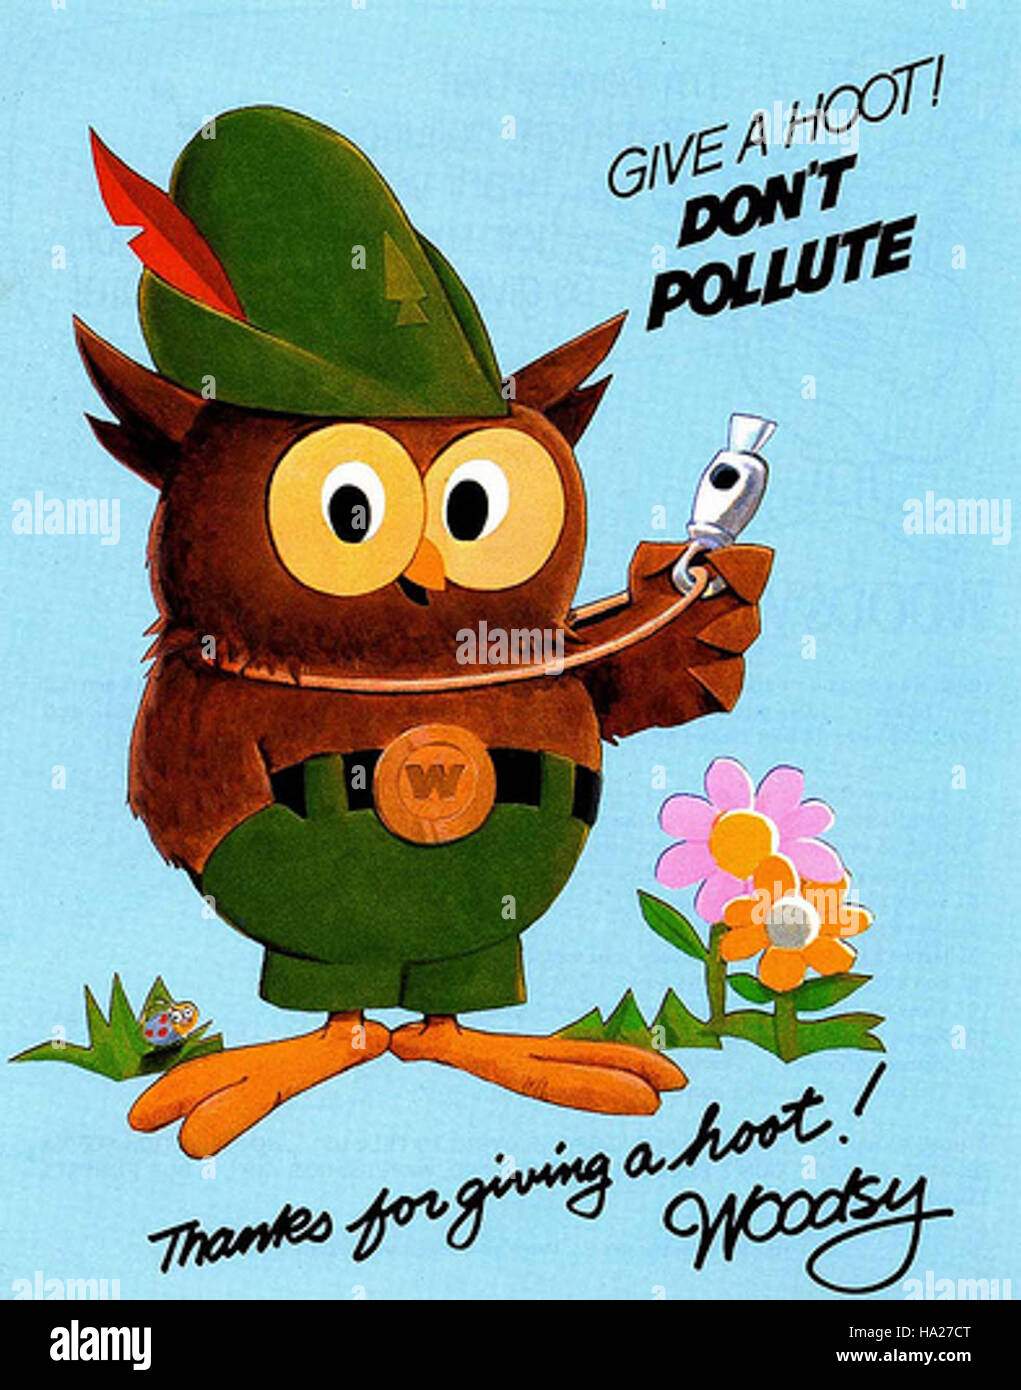 usdagov 9733378263 woodsy owl Stock Photo